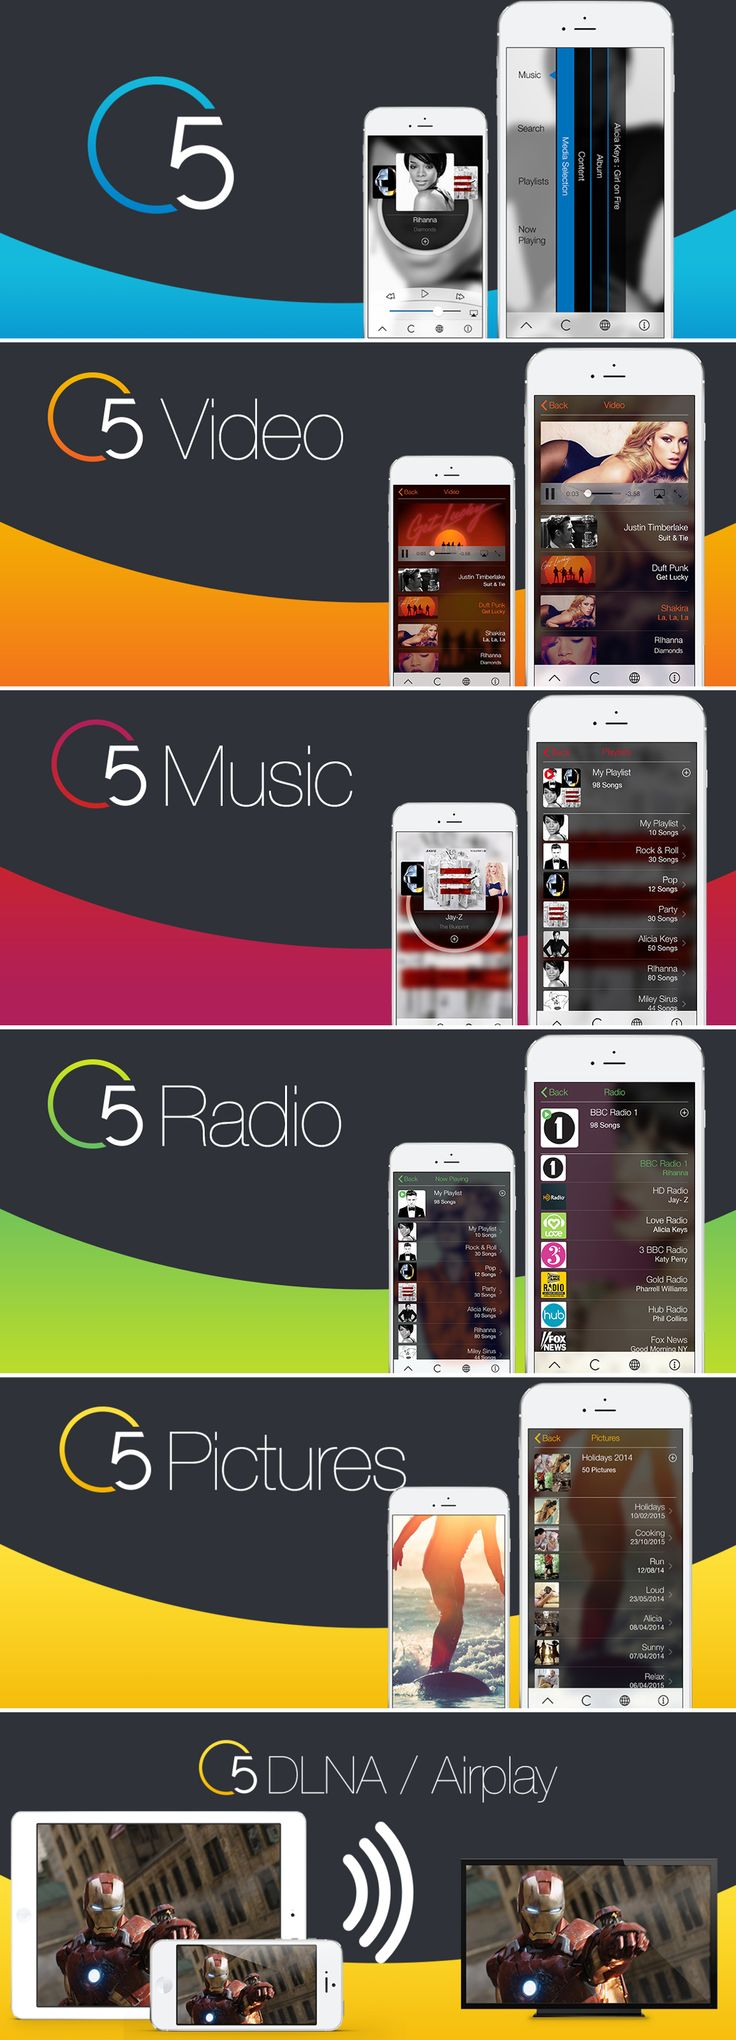 New look, more features, ready for iOS 8! The new iPhone 6 has arrived today and Creation 5 looks crisp and sharp on the new Retina HD displays. Read all about it on our blog : http://www.creation.com.es/creation-5-update-4-1-0/